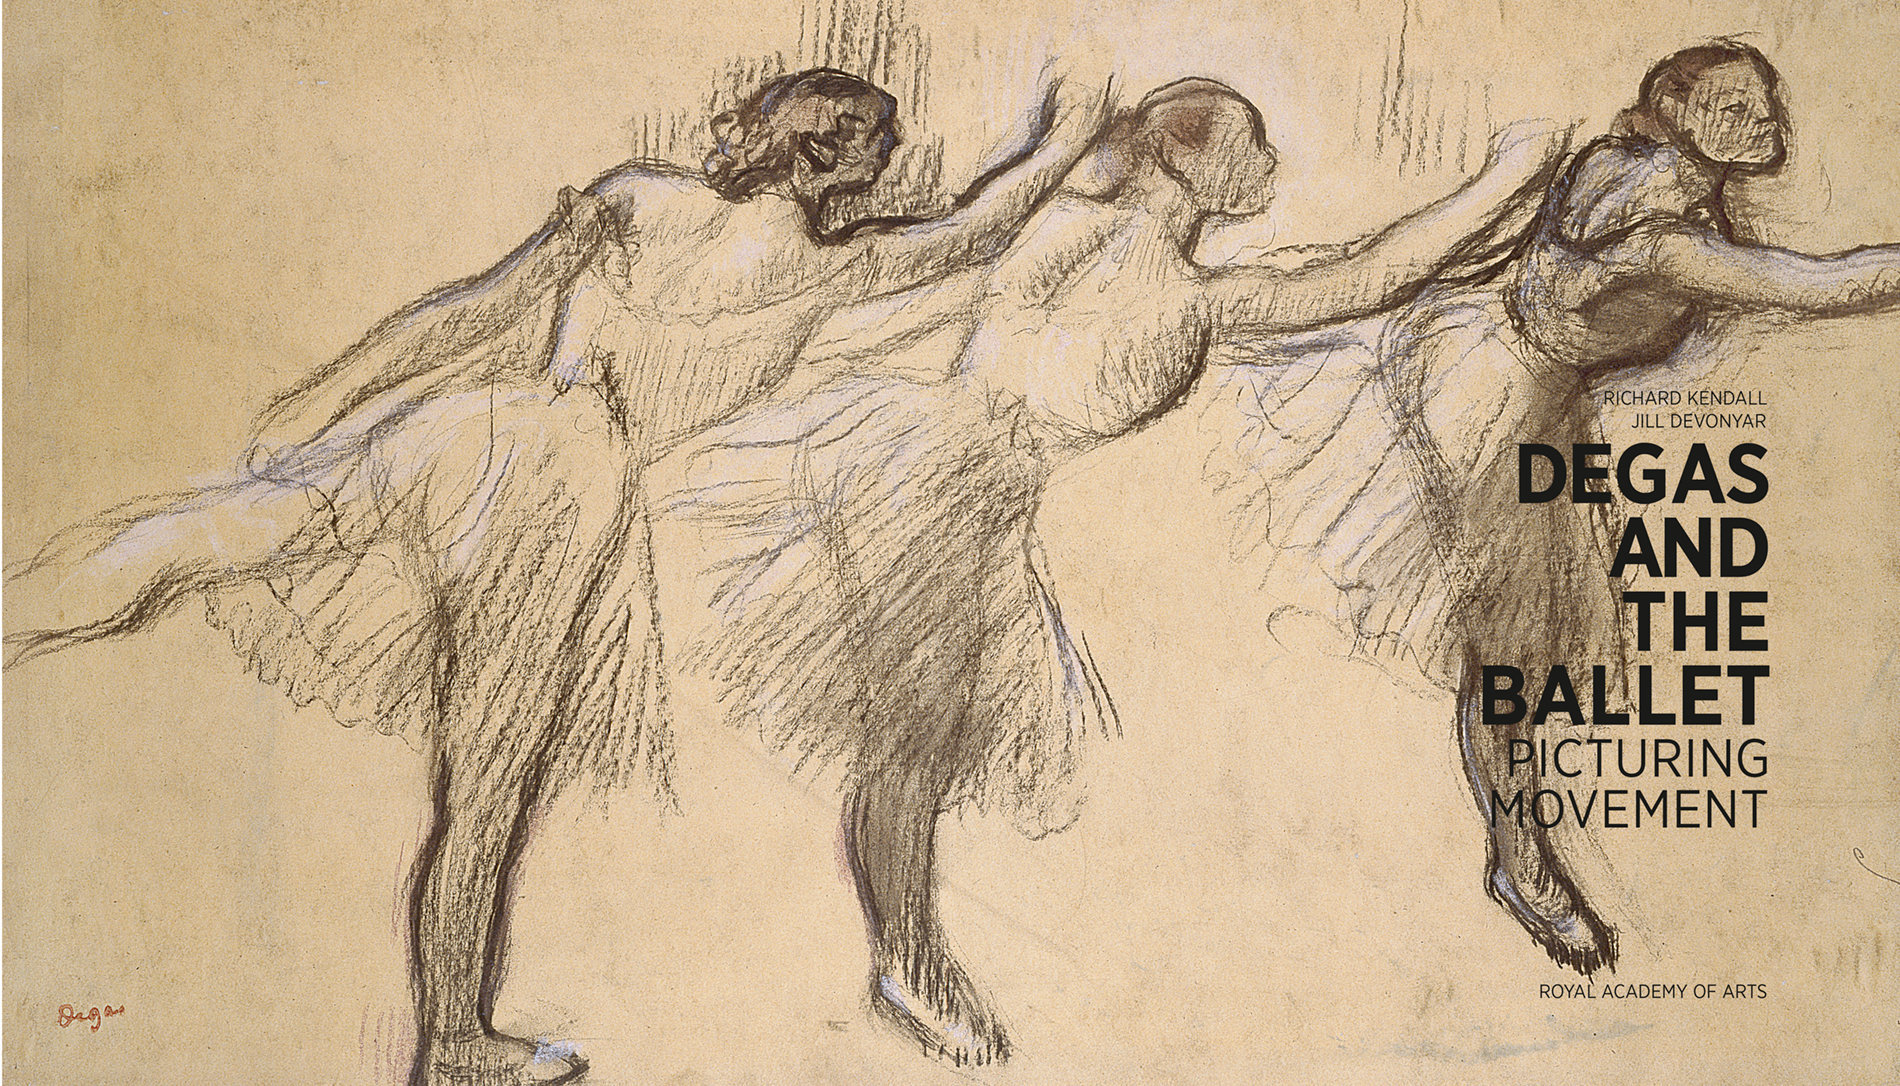 Degas and the Ballet - Picturing movement